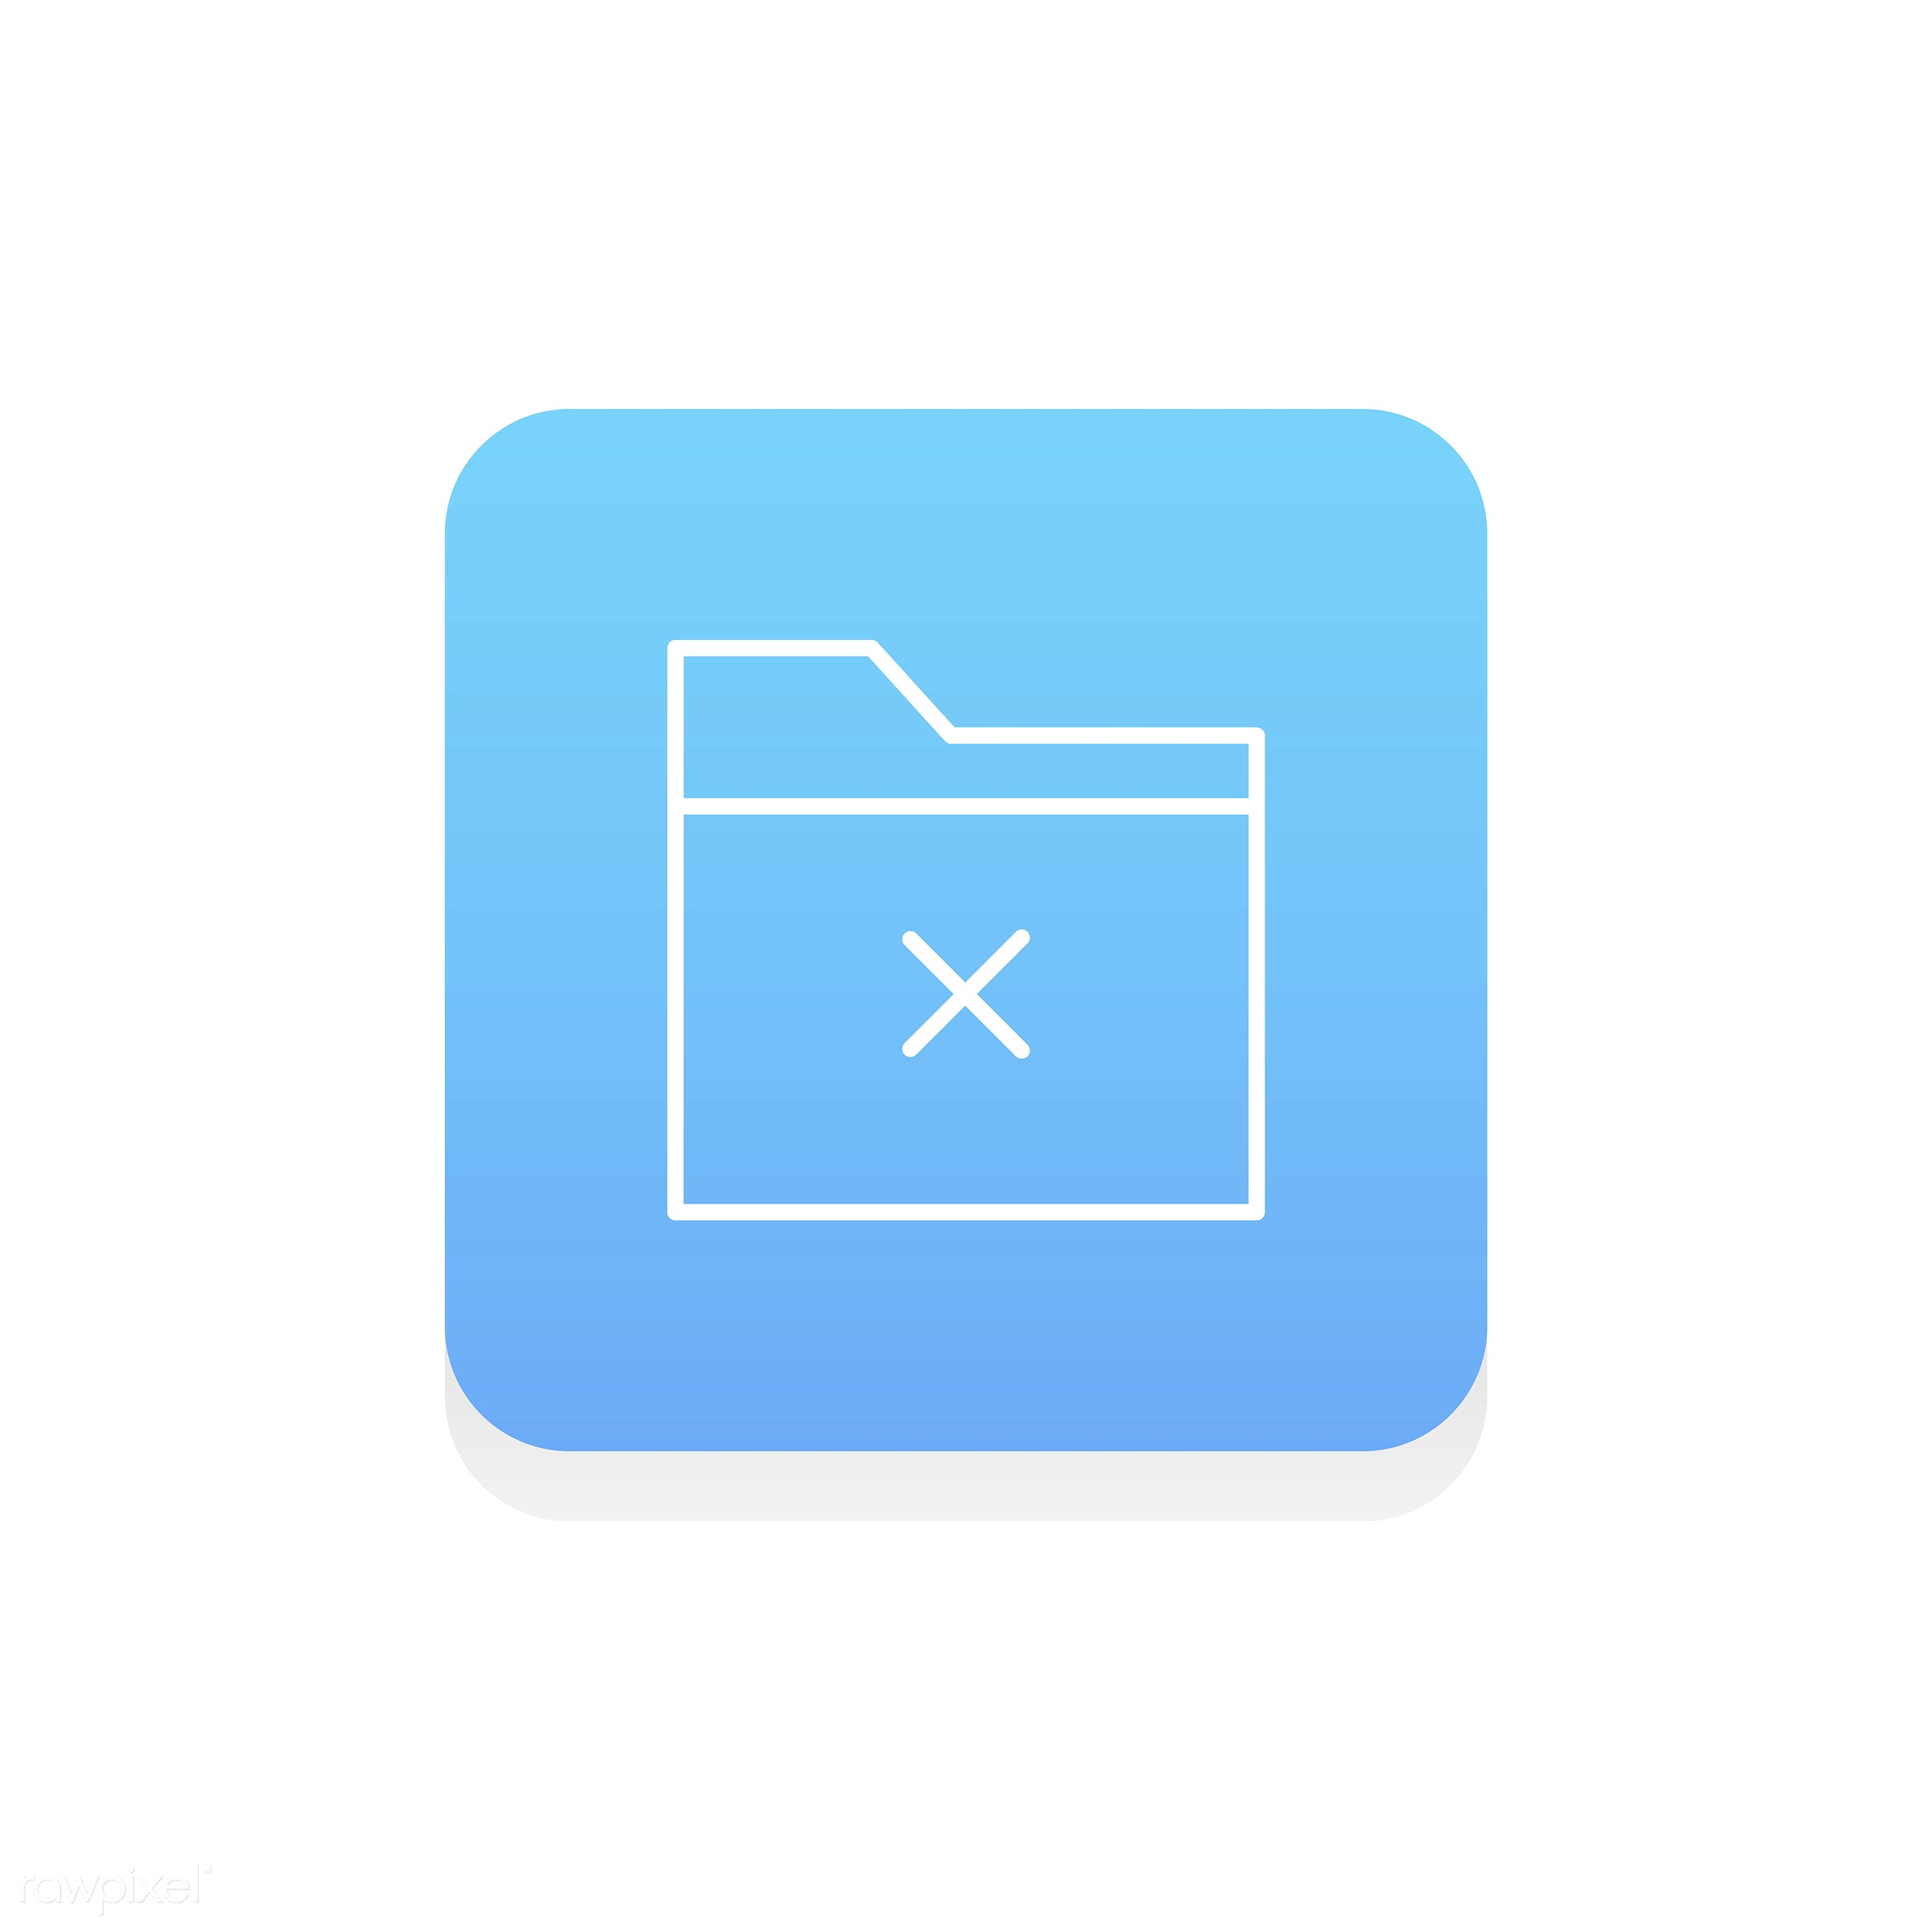 Vector of folder icon - data, design, document, flat, graphic, icon, illustration, information, isolated, layout, style,...